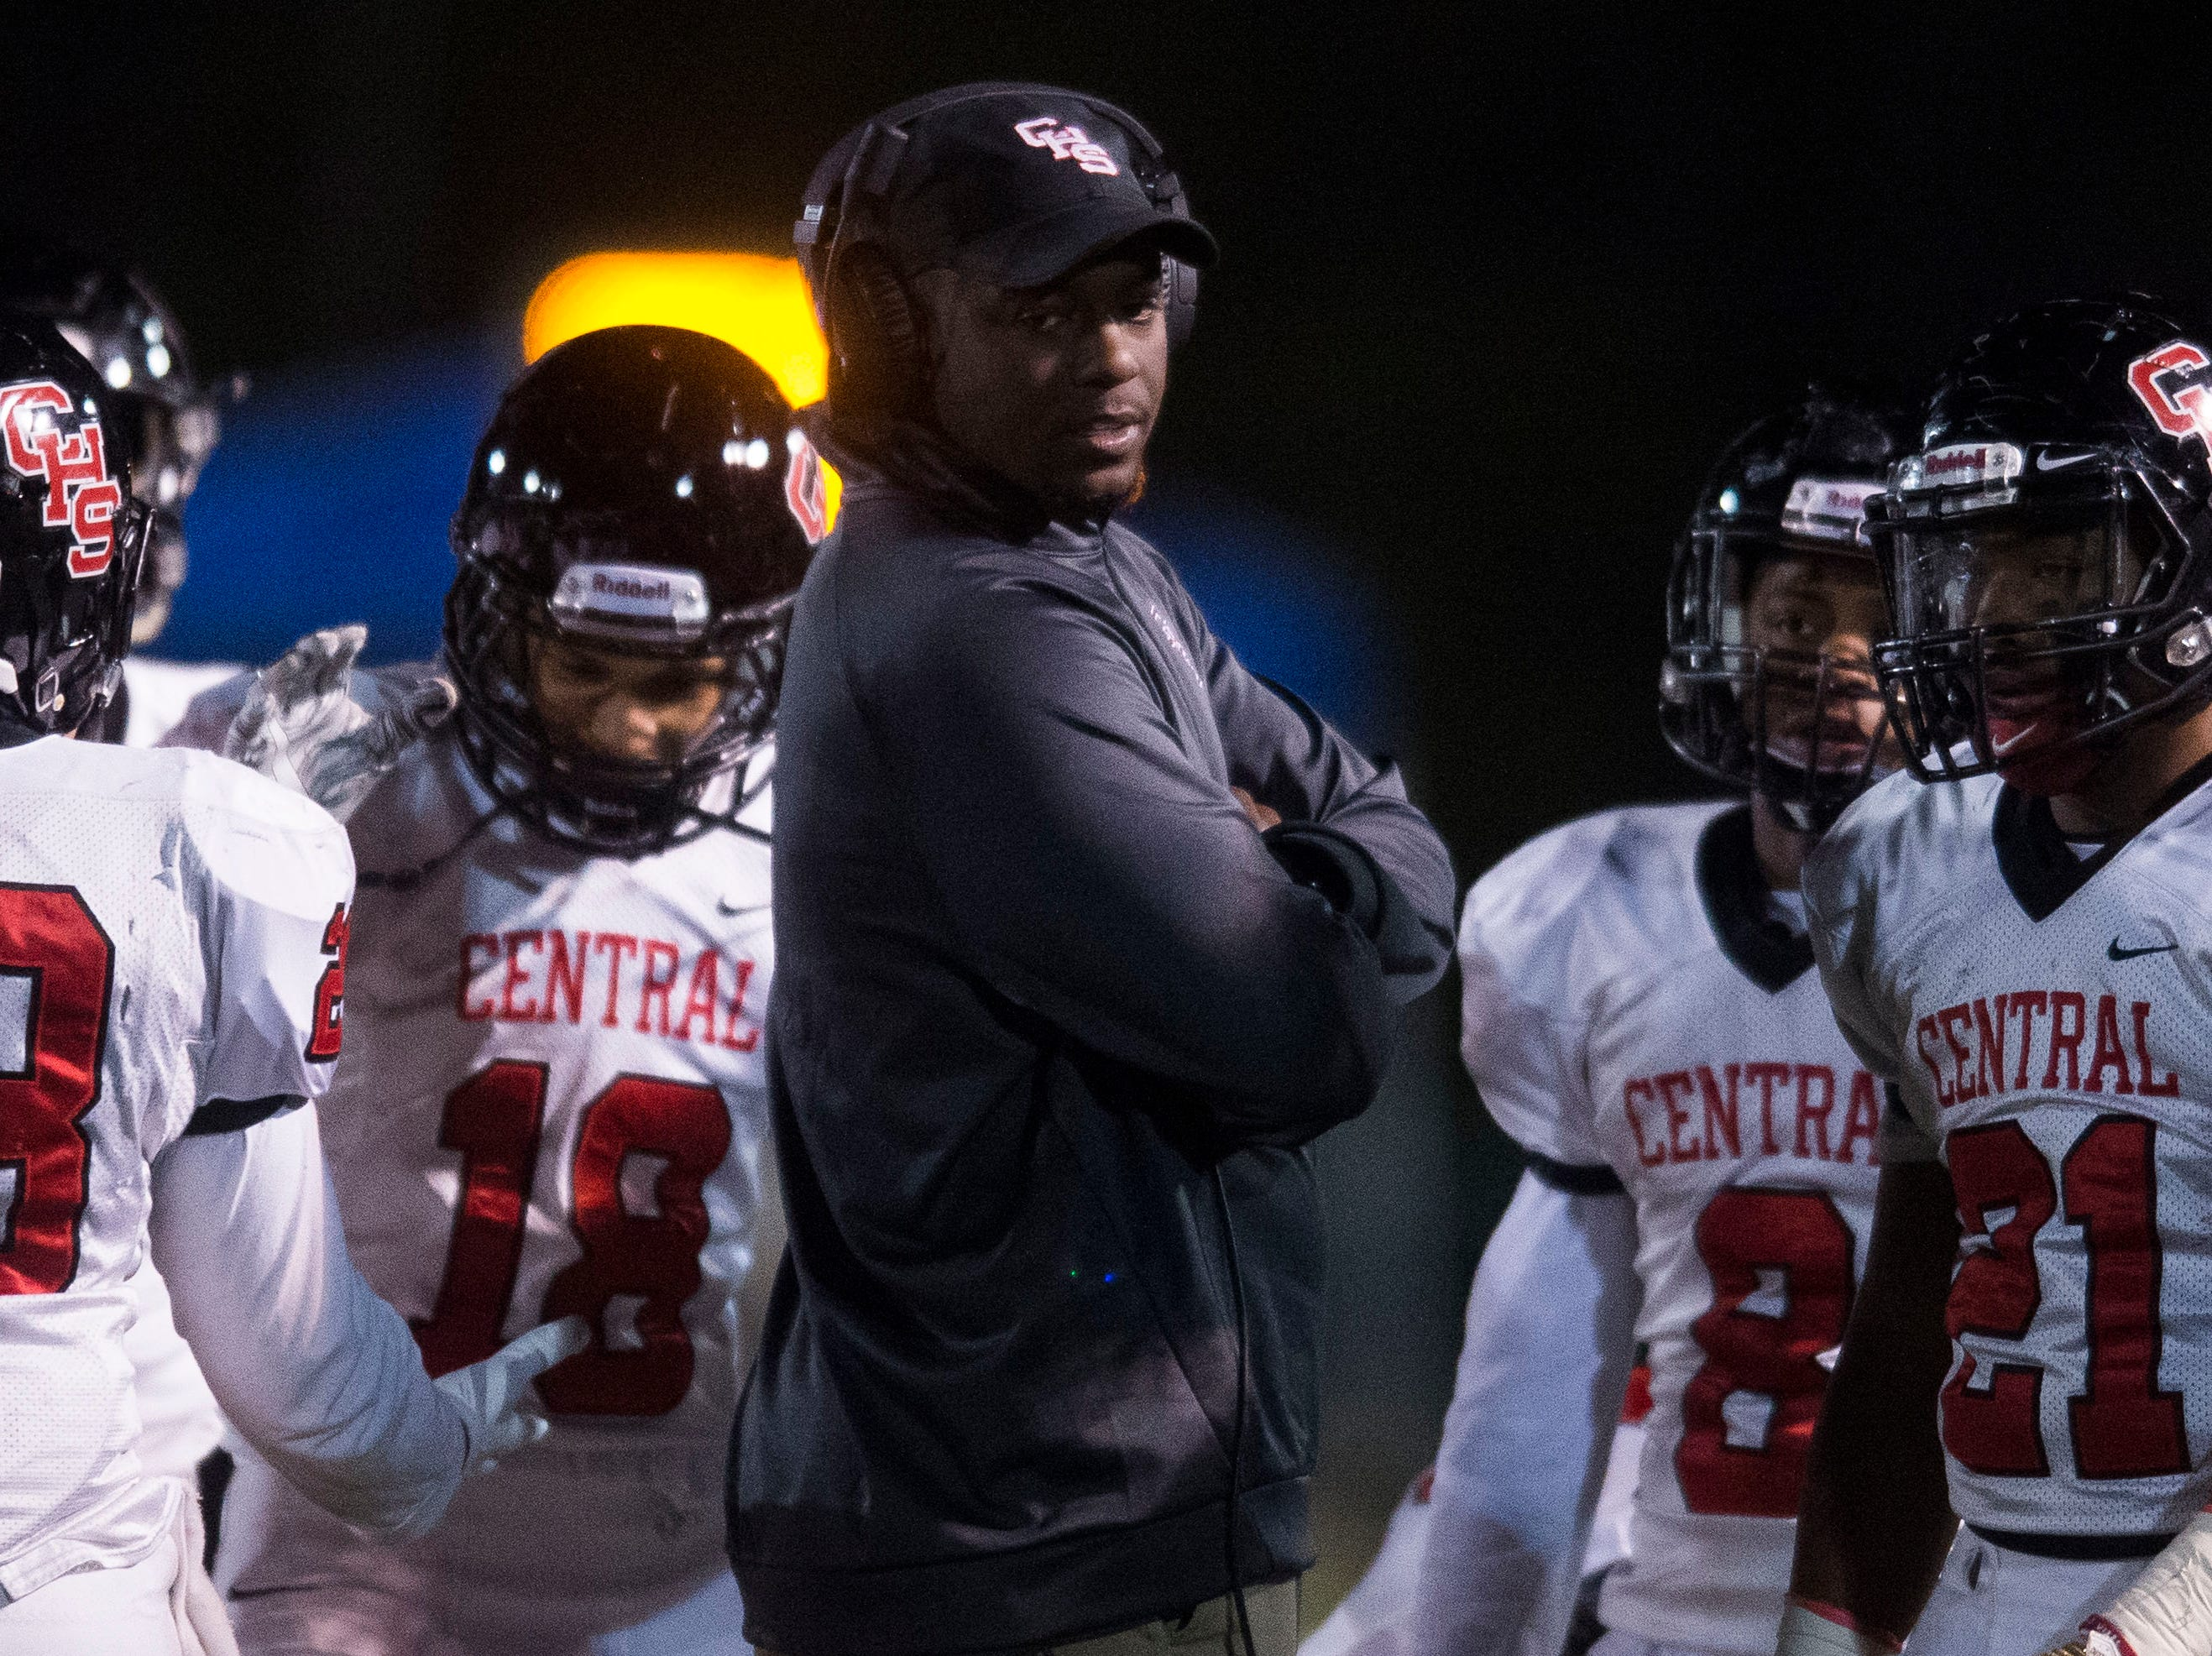 Central head coach Bryson Rosser speaks to his players on the field during a Class 5A semifinal game between Central at Catholic Friday, Nov. 23, 2018. Central defeated Catholic 24-19.